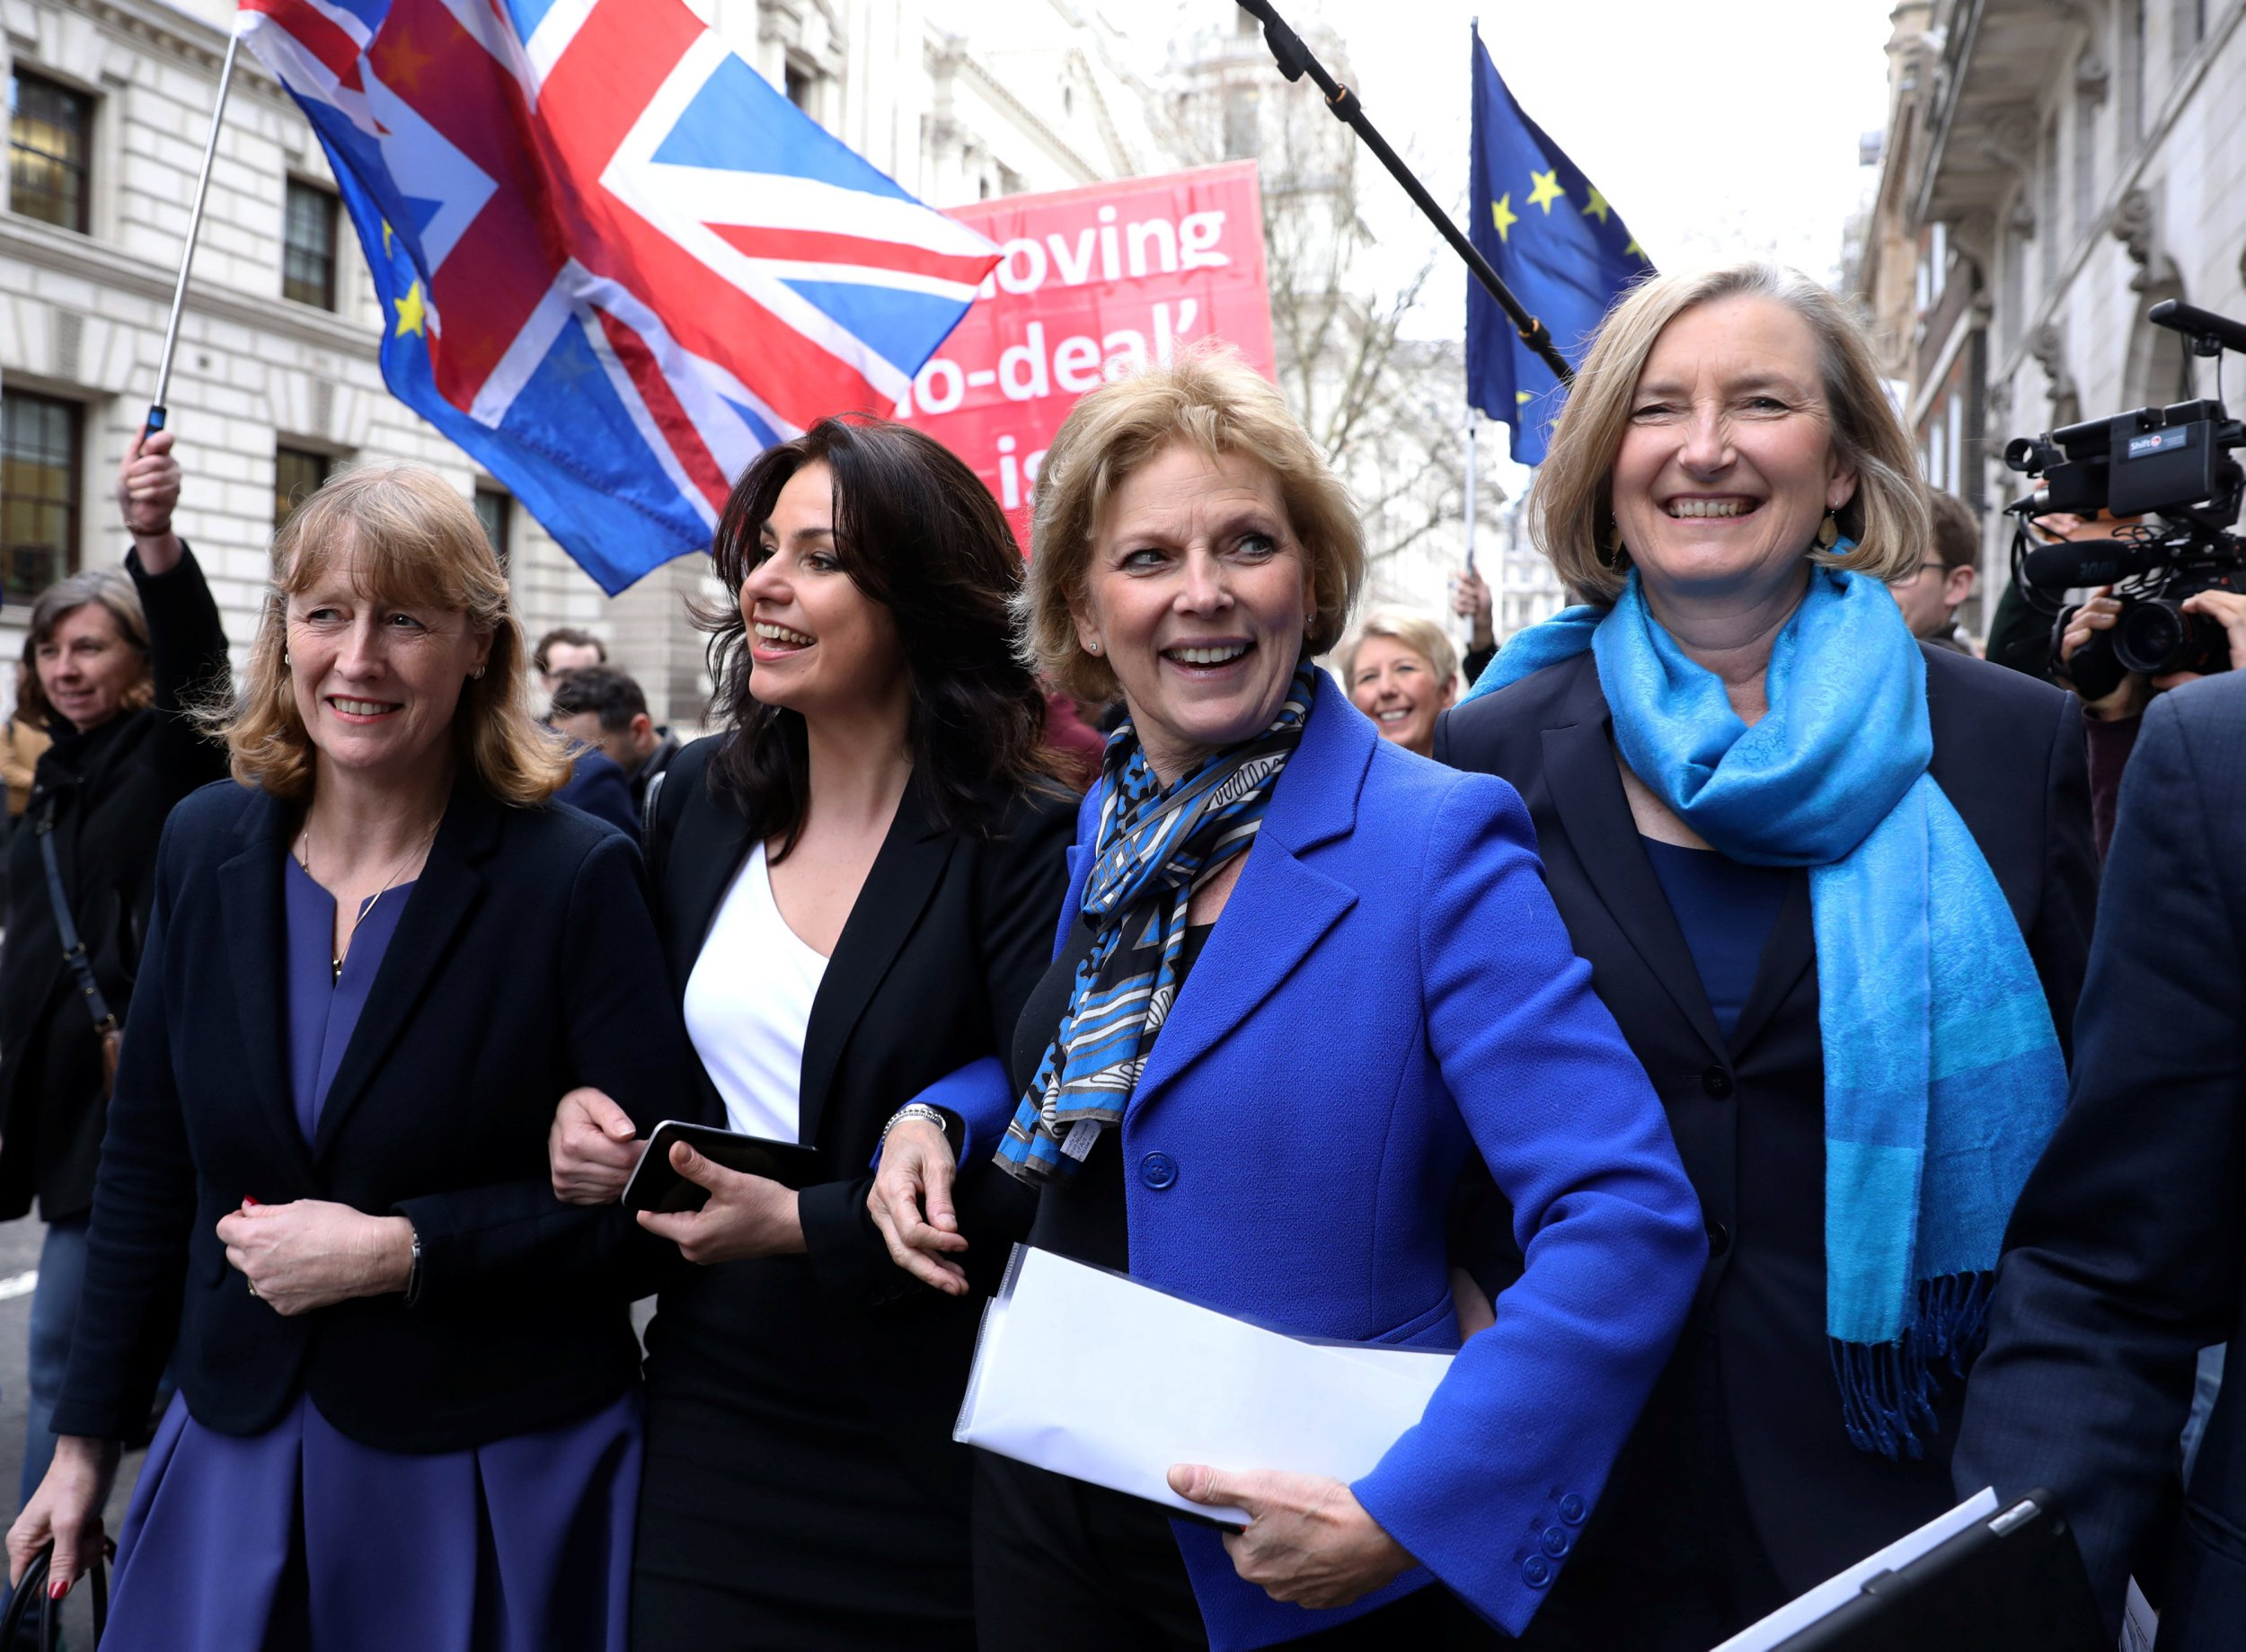 British Conservative Party MPs Joan Ryan, Heidi Allen, Anna Soubry and Sarah Wollaston arrive at a news conference in London, Britain February 20, 2019. REUTERS/Simon Dawson